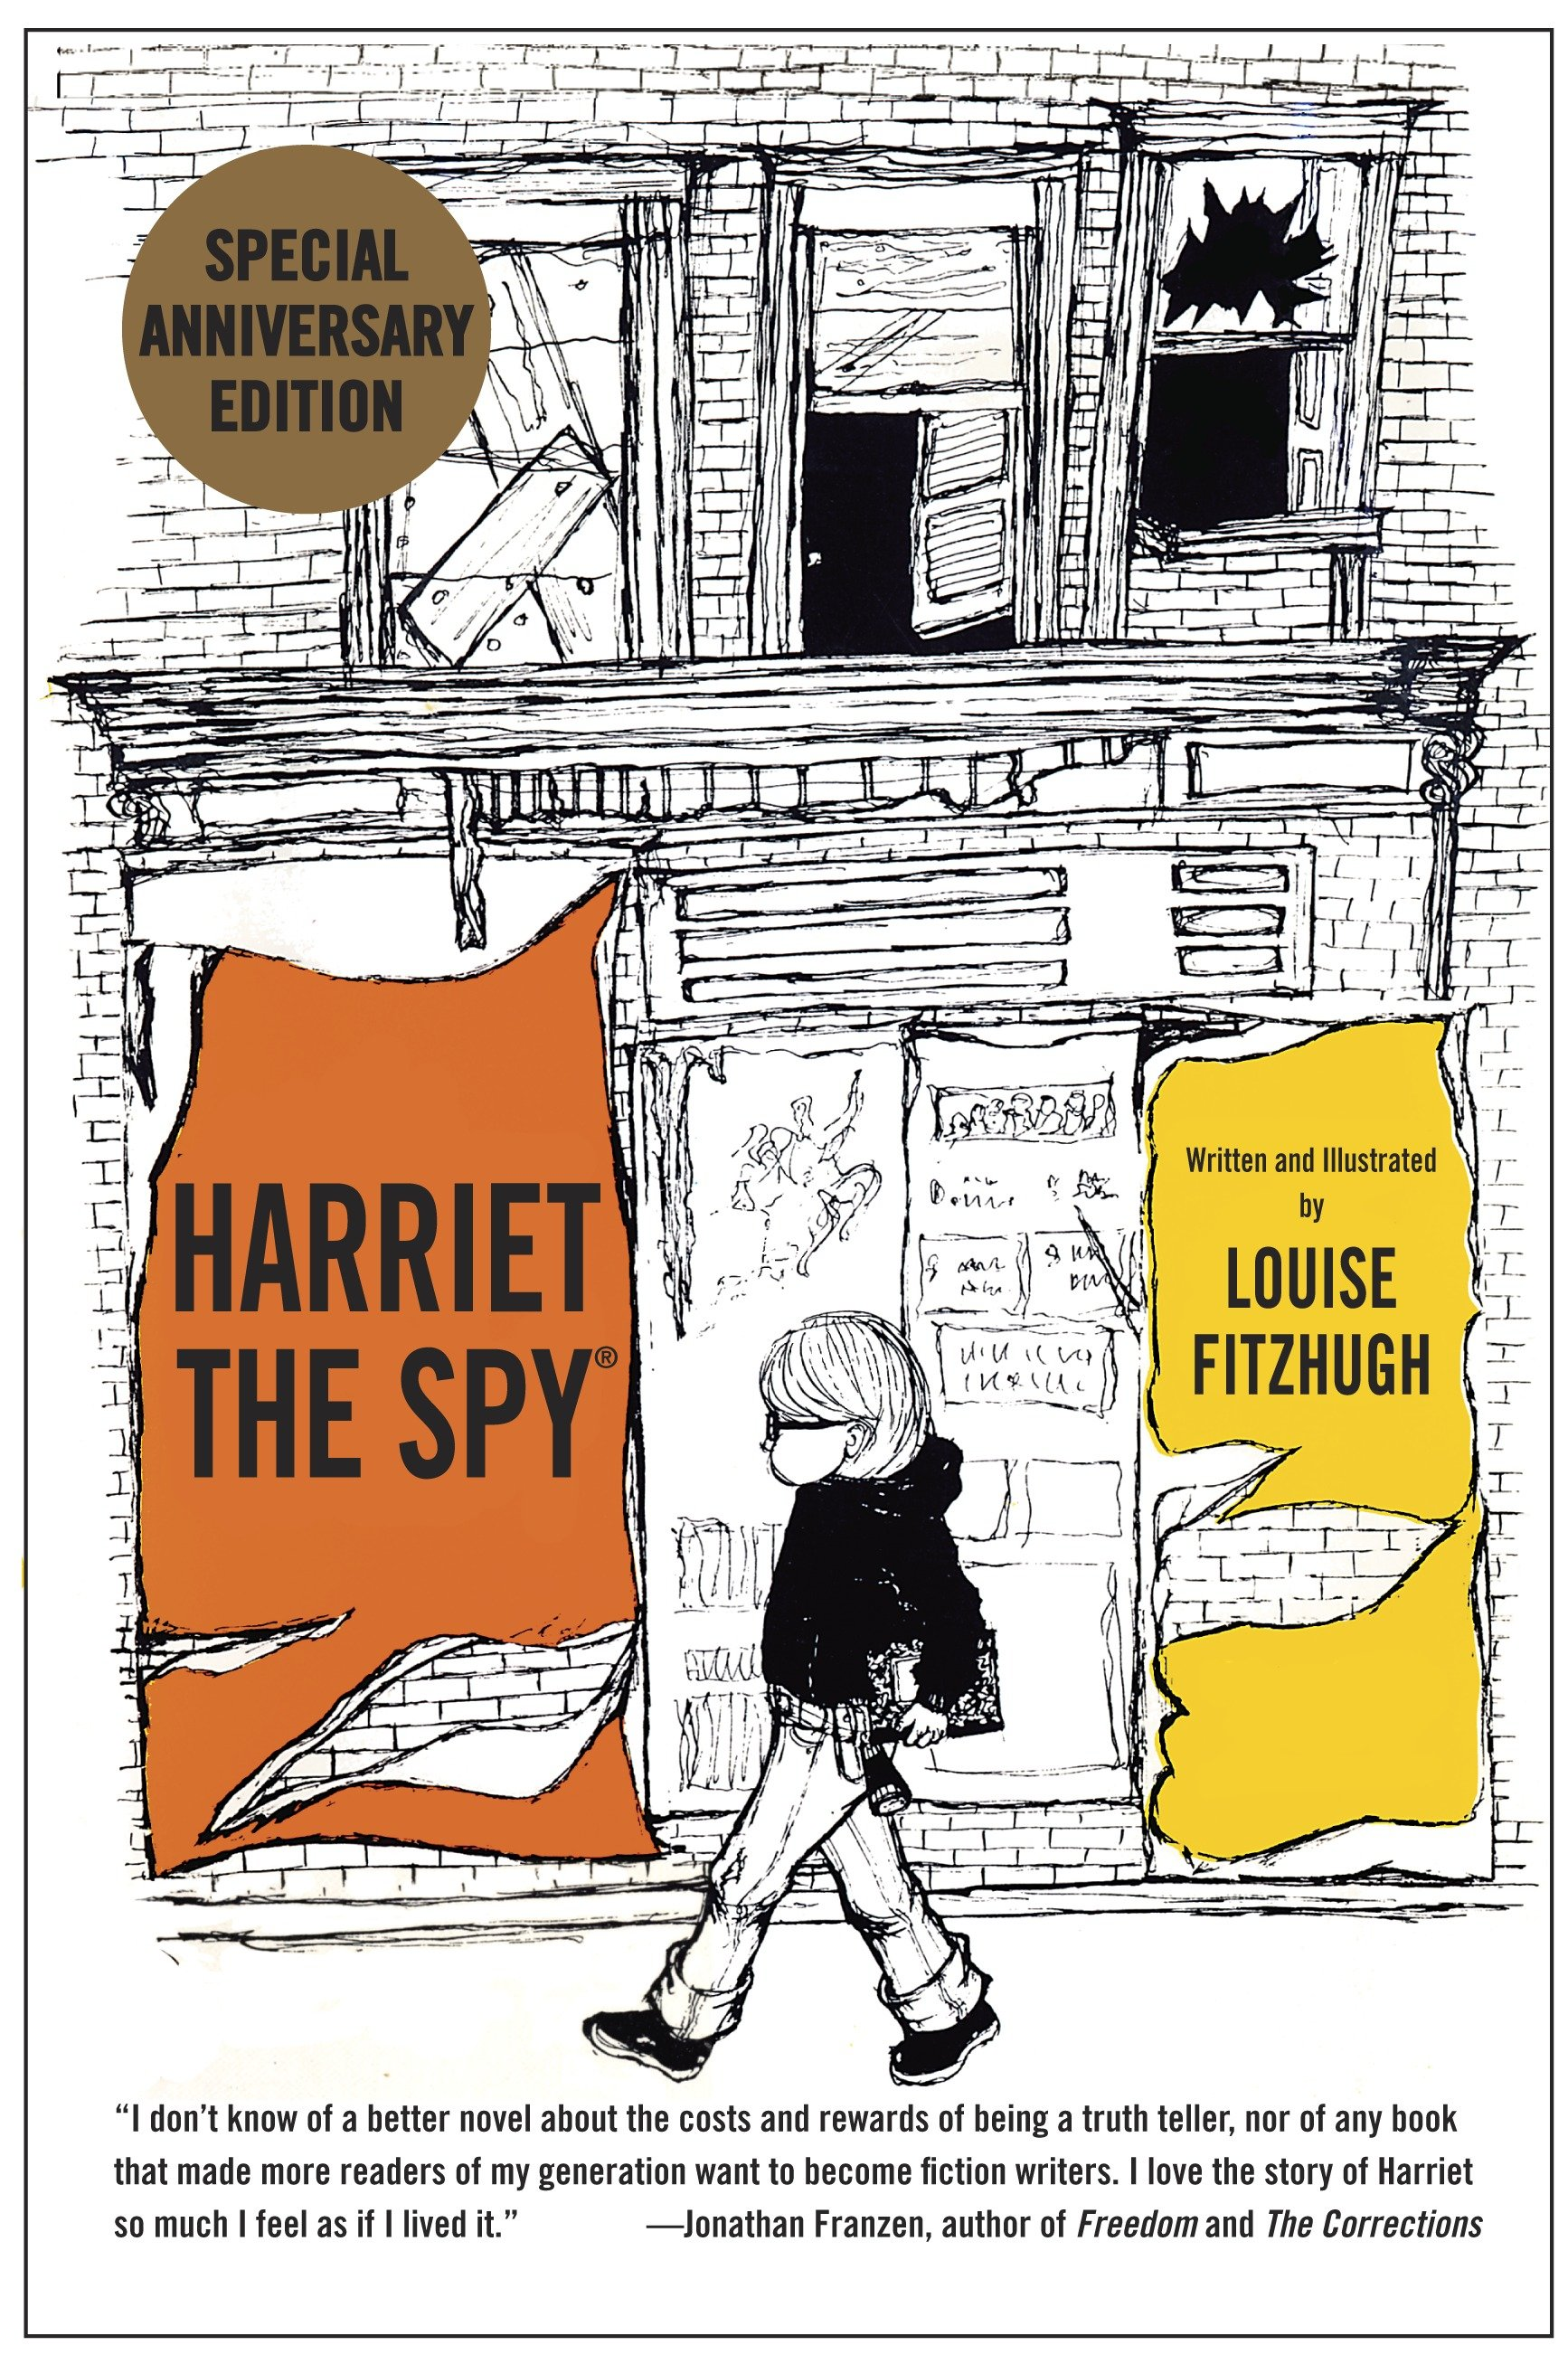 Harriet the spy: 50th anniversary edition cover image